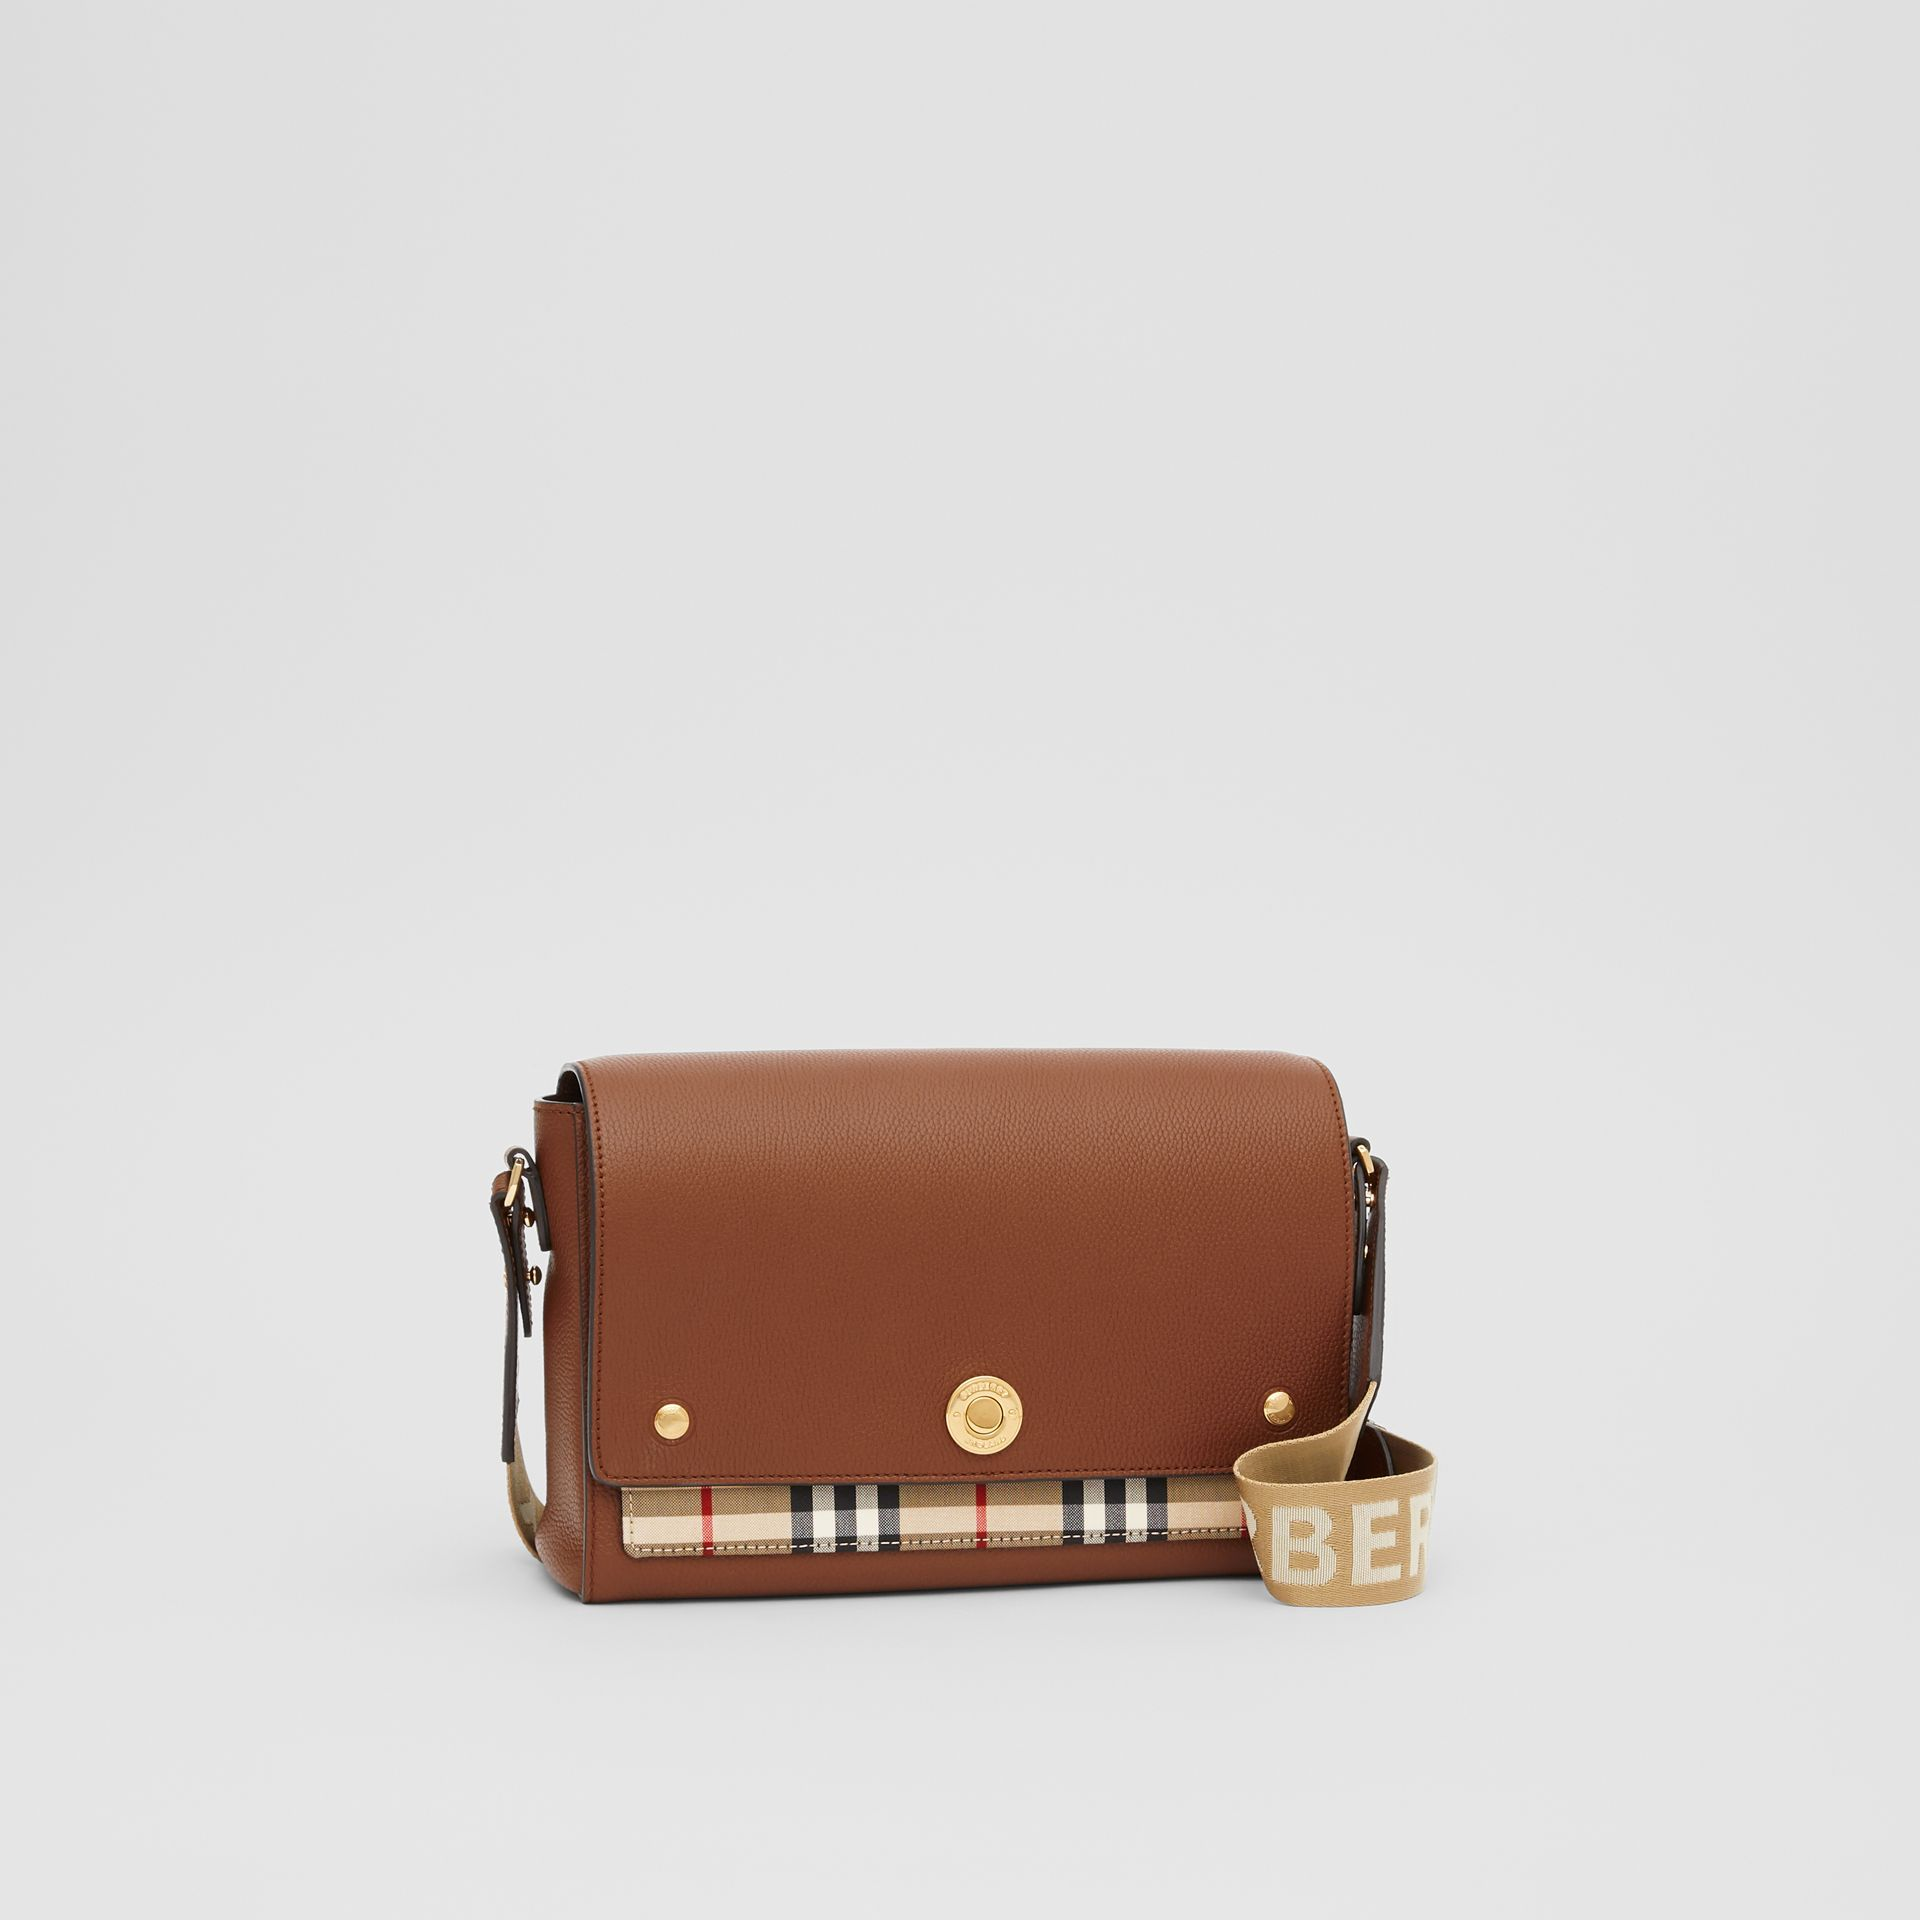 Leather and Vintage Check Note Crossbody Bag in Tan - Women | Burberry United States - gallery image 6